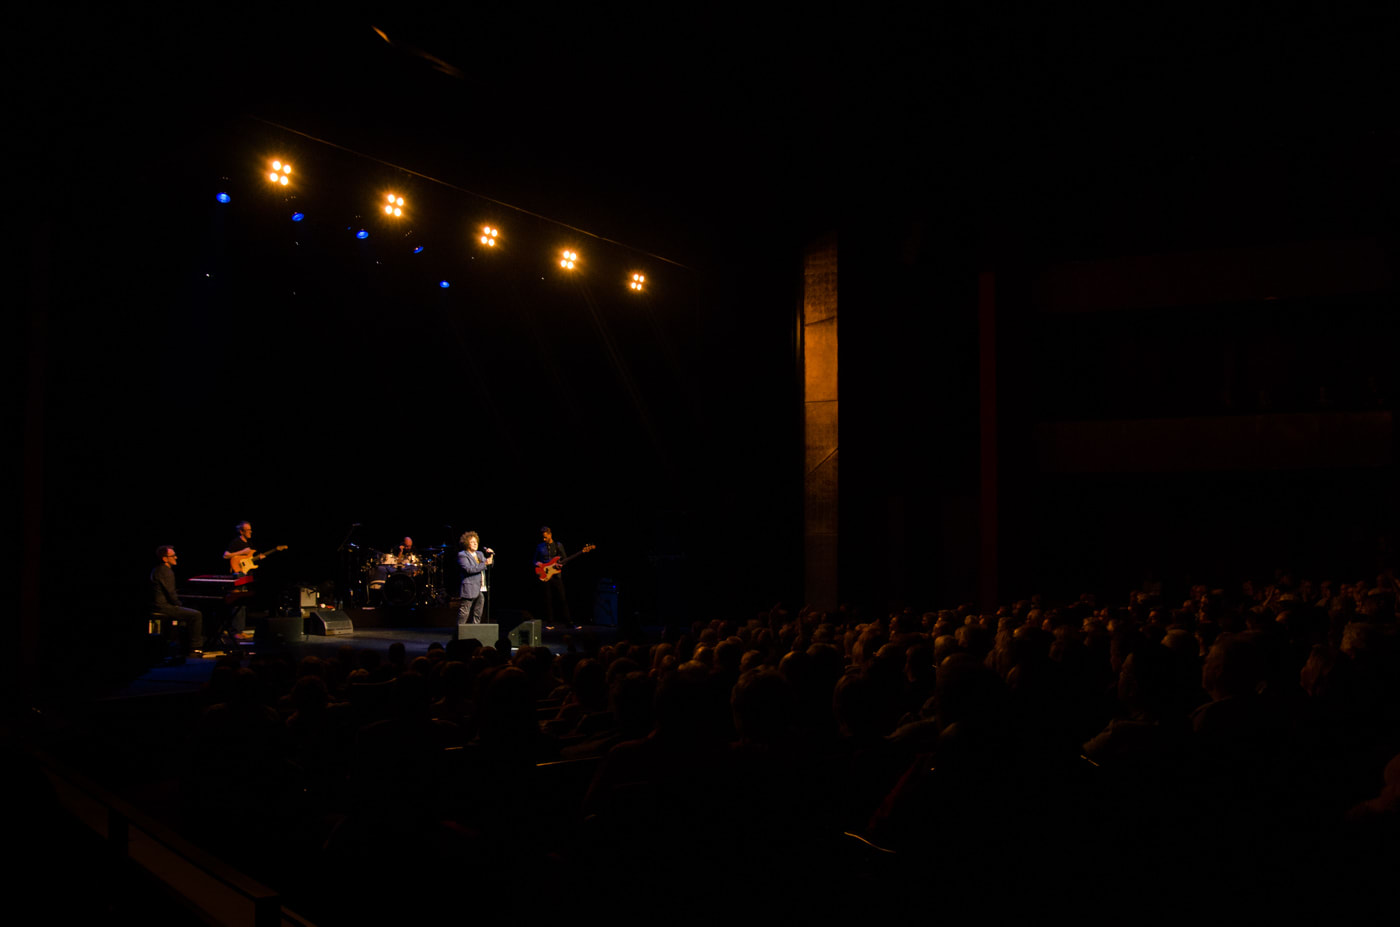 Leo Sayer at Bord Gais Energy Theatre by Sean Smyth (16-10-15) (59 of 129)